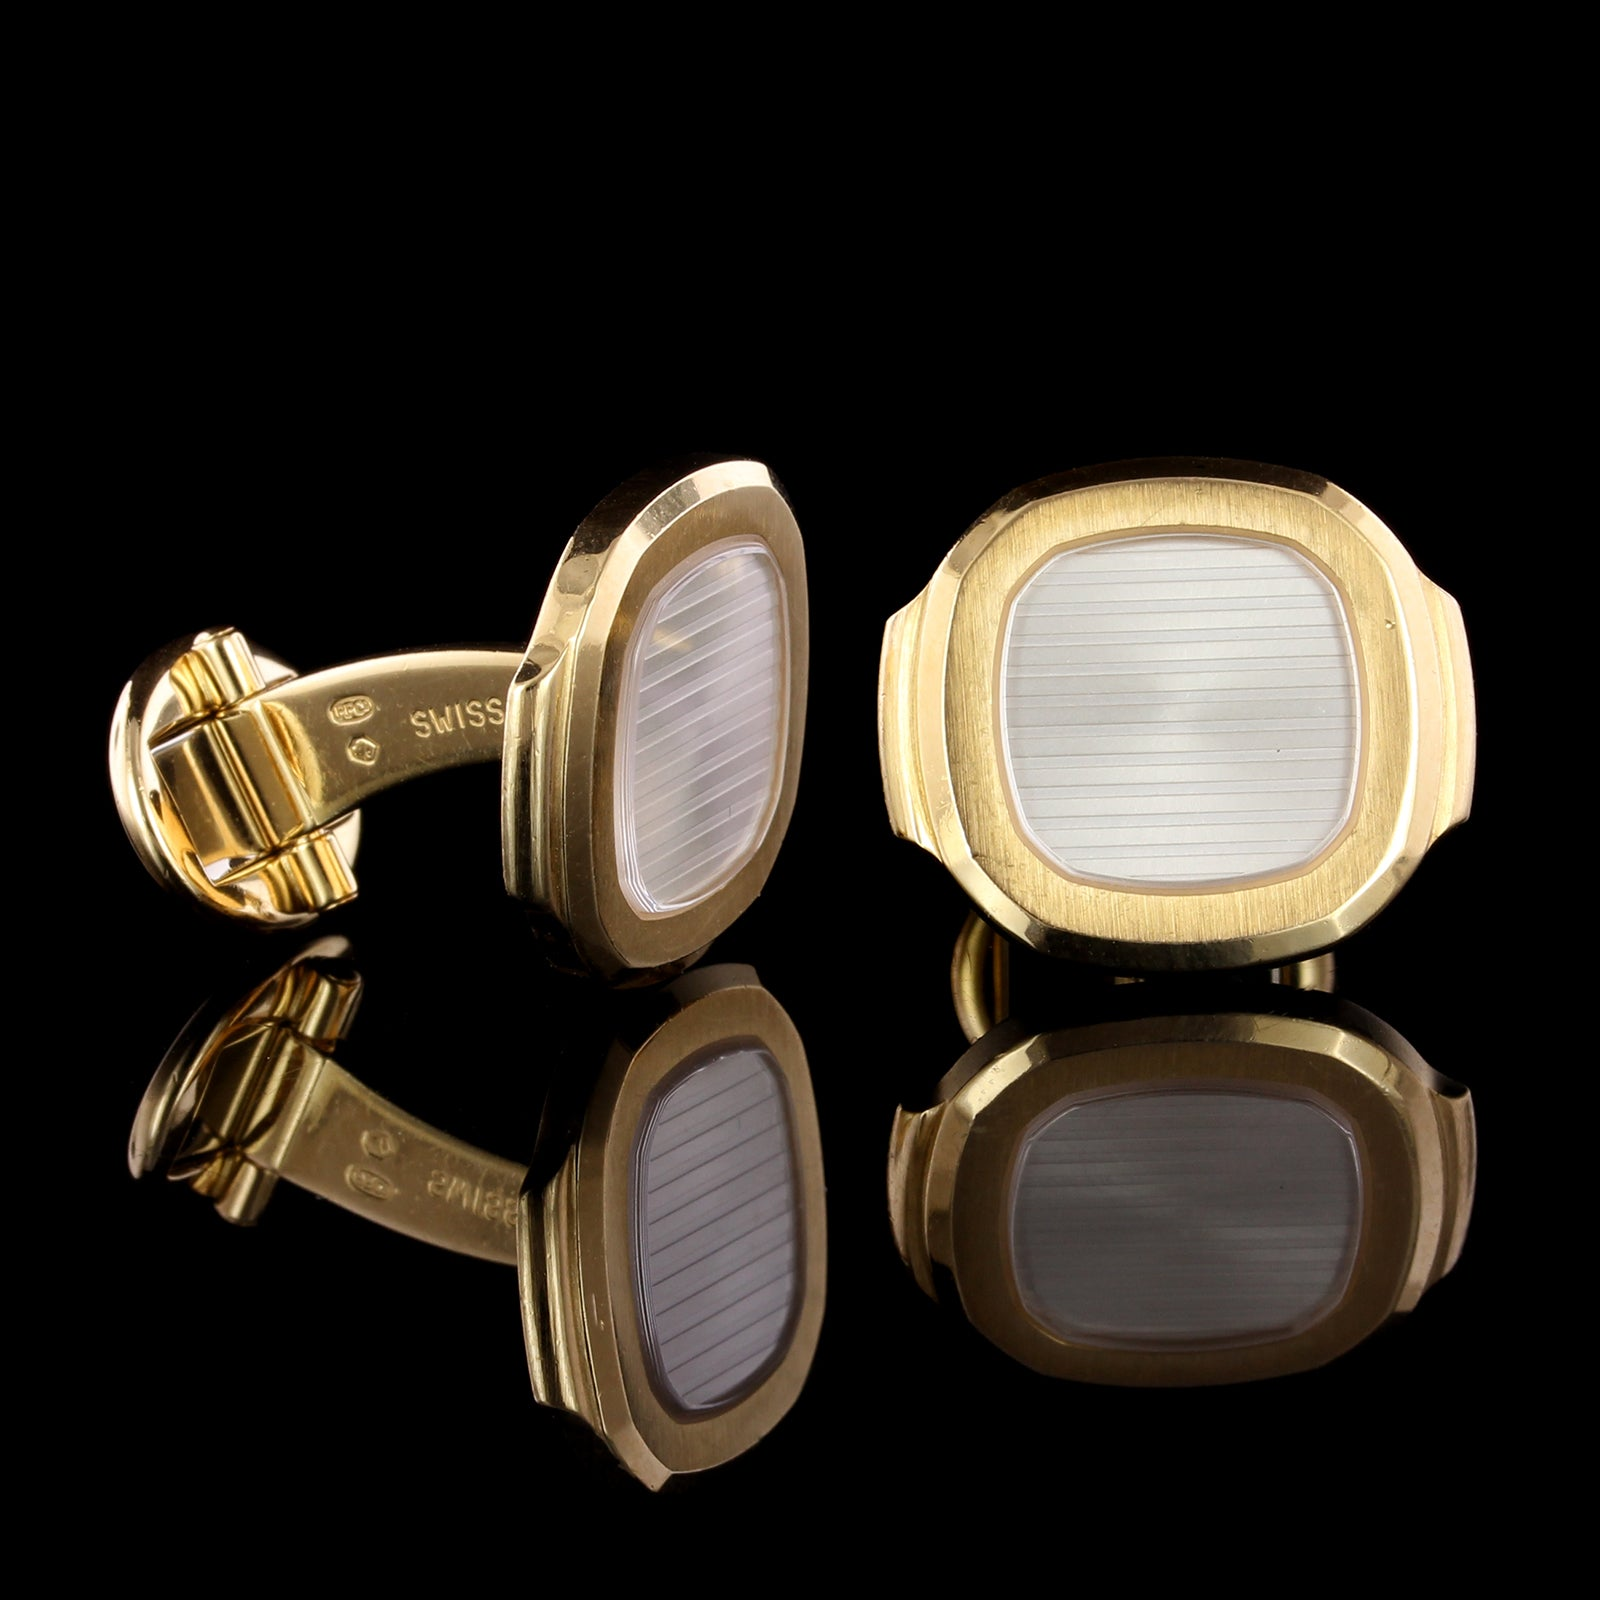 Patek Philippe 18K Yellow Gold Estate Nautilus Cufflinks